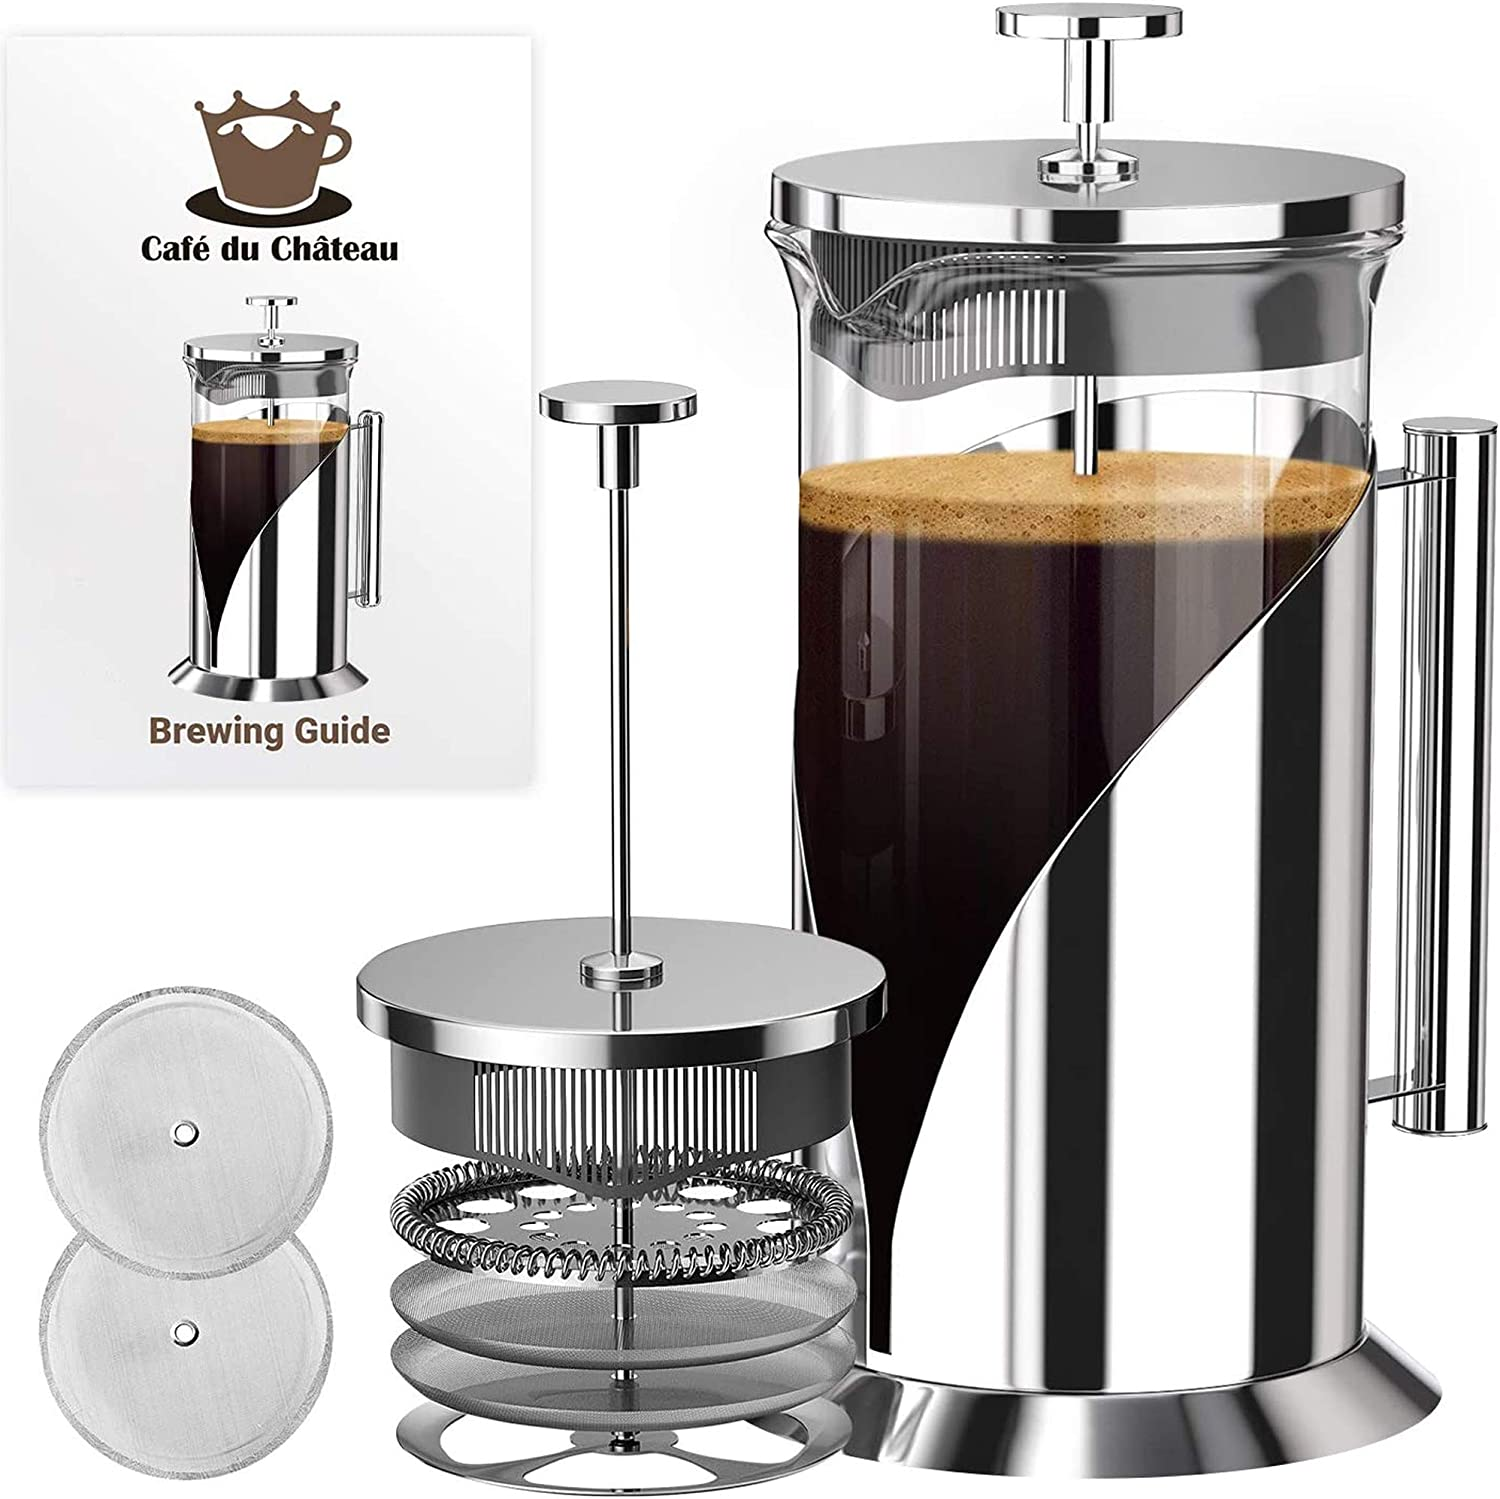 8 Stainless Steel Filter Round Screen for 34 oz French Coffee Tea Press Maker